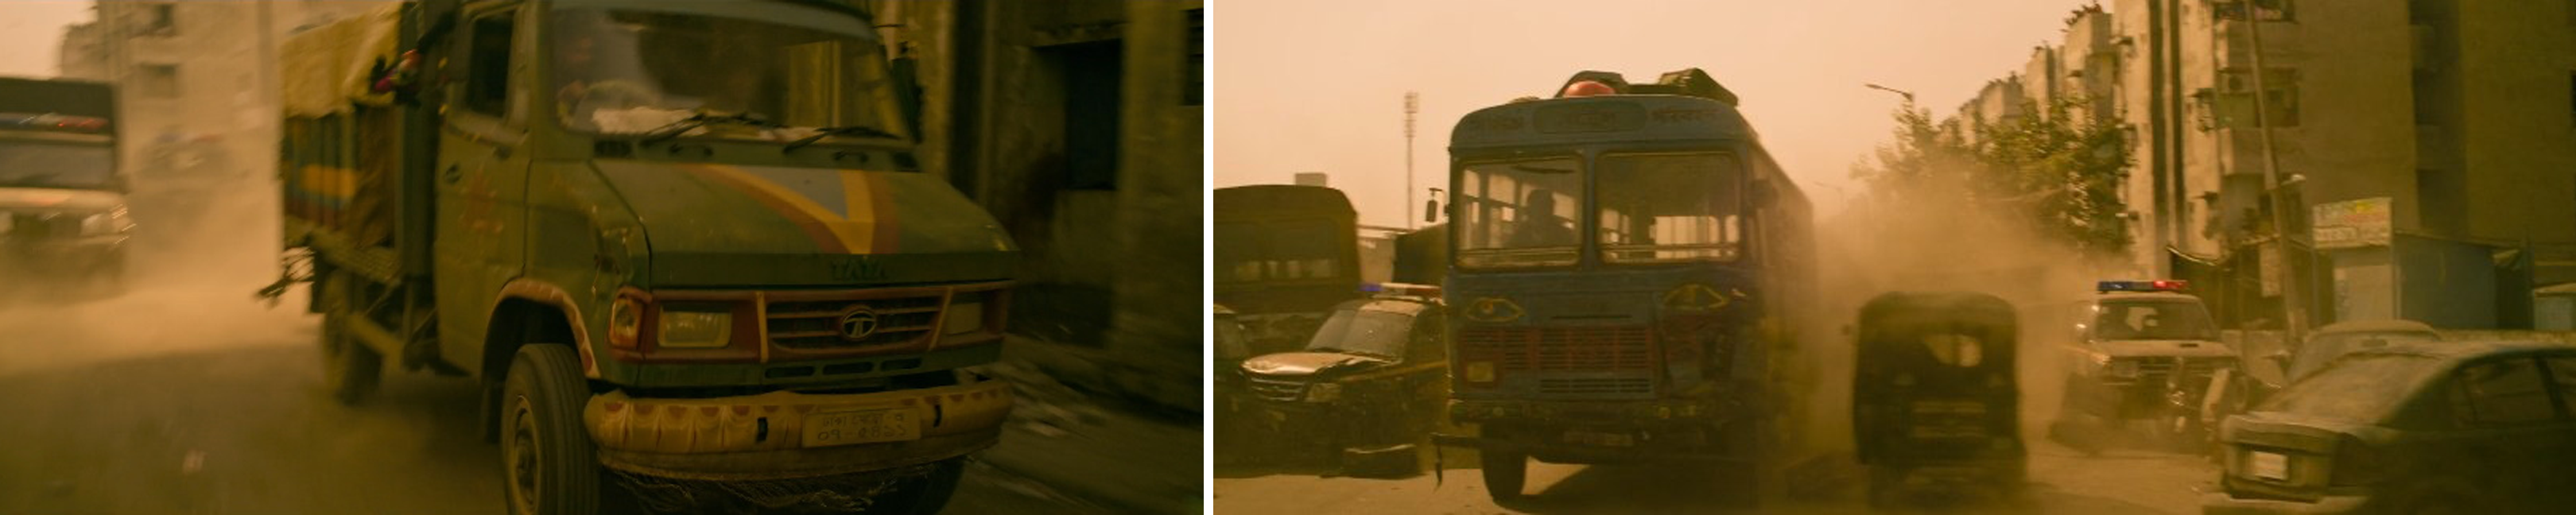 Tata bus and cars product placement in Netflix's Chris Hemsworth film EXTRACTION